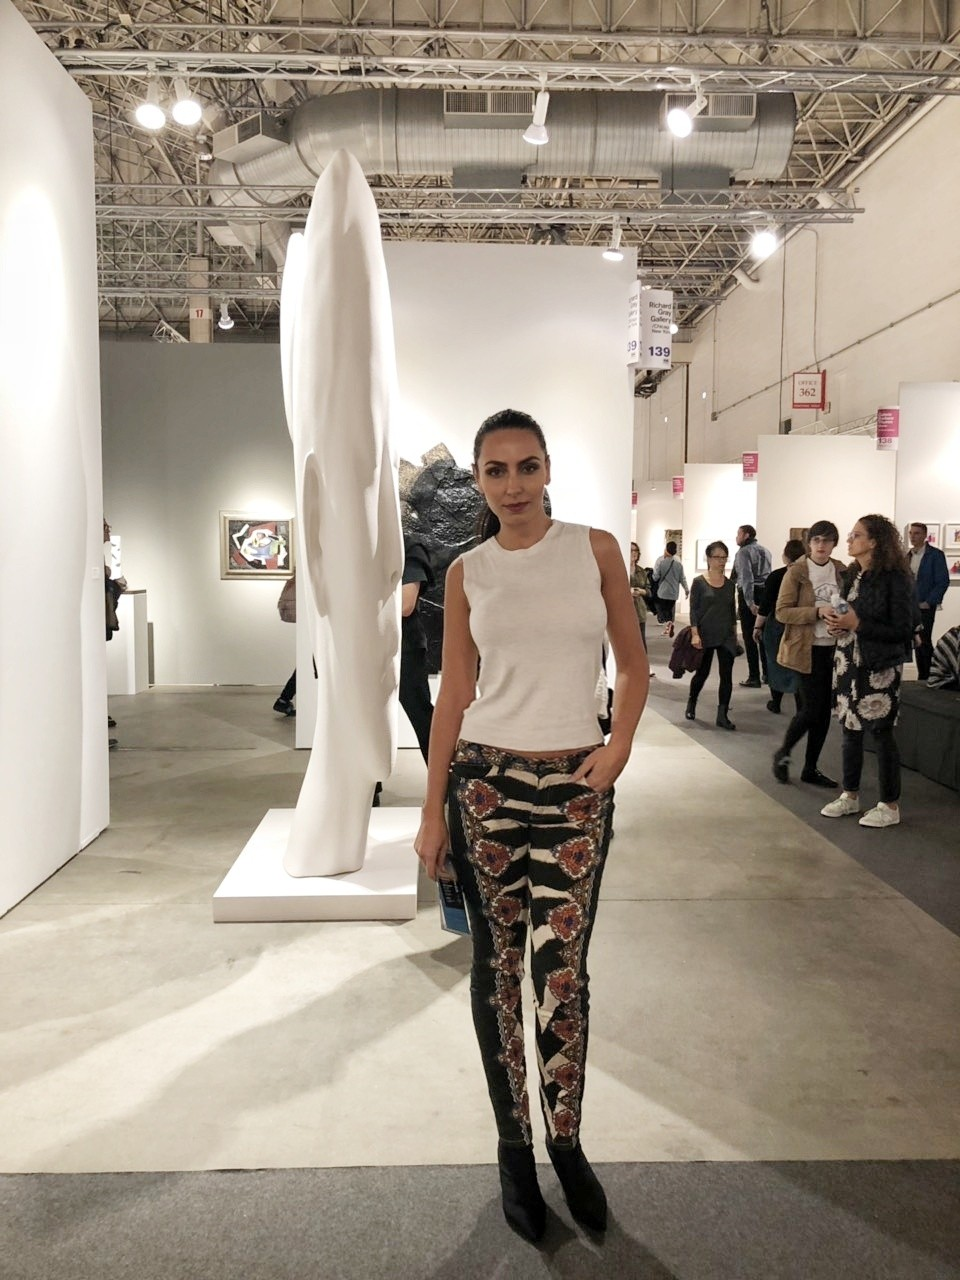 Expo Chicago 2018, Chicago, Chicago Blogger, Things to do in Chicago, art expo, lifestyle blogger